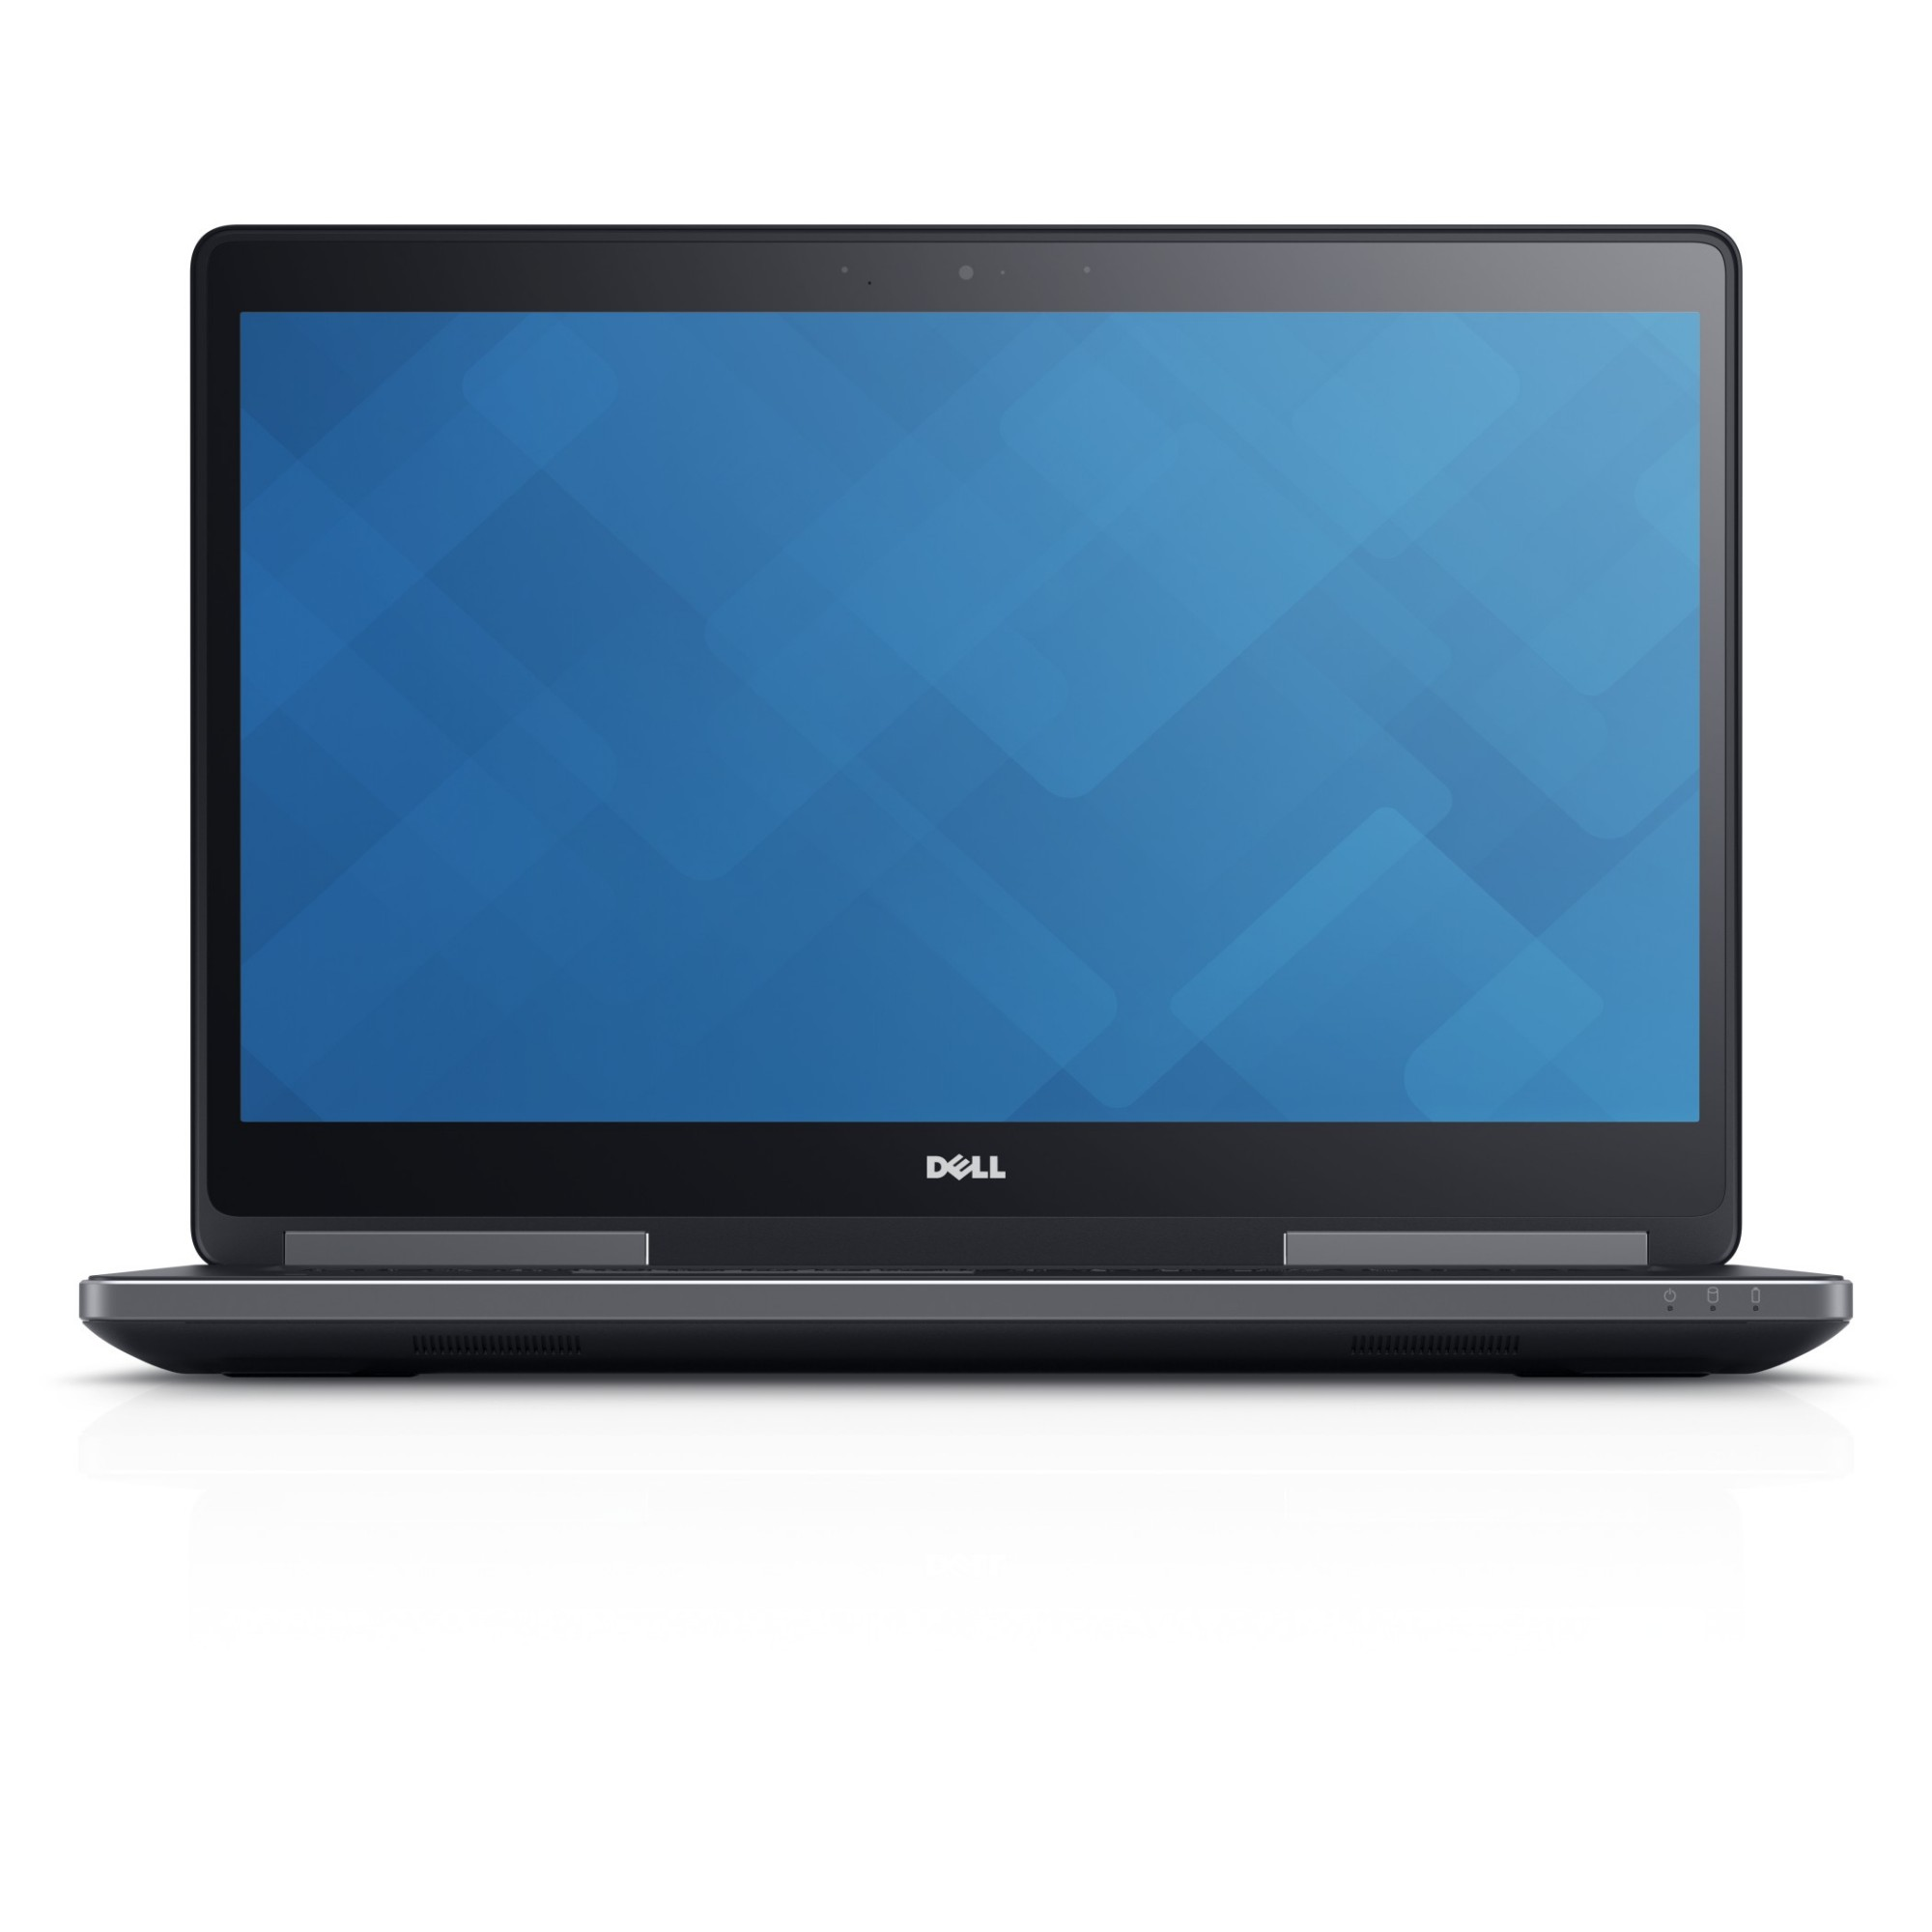 "DELL Precision M7720 2.7GHz i7-6820HQ 17.3"" 1920 x 1080pixels Black Mobile workstation"